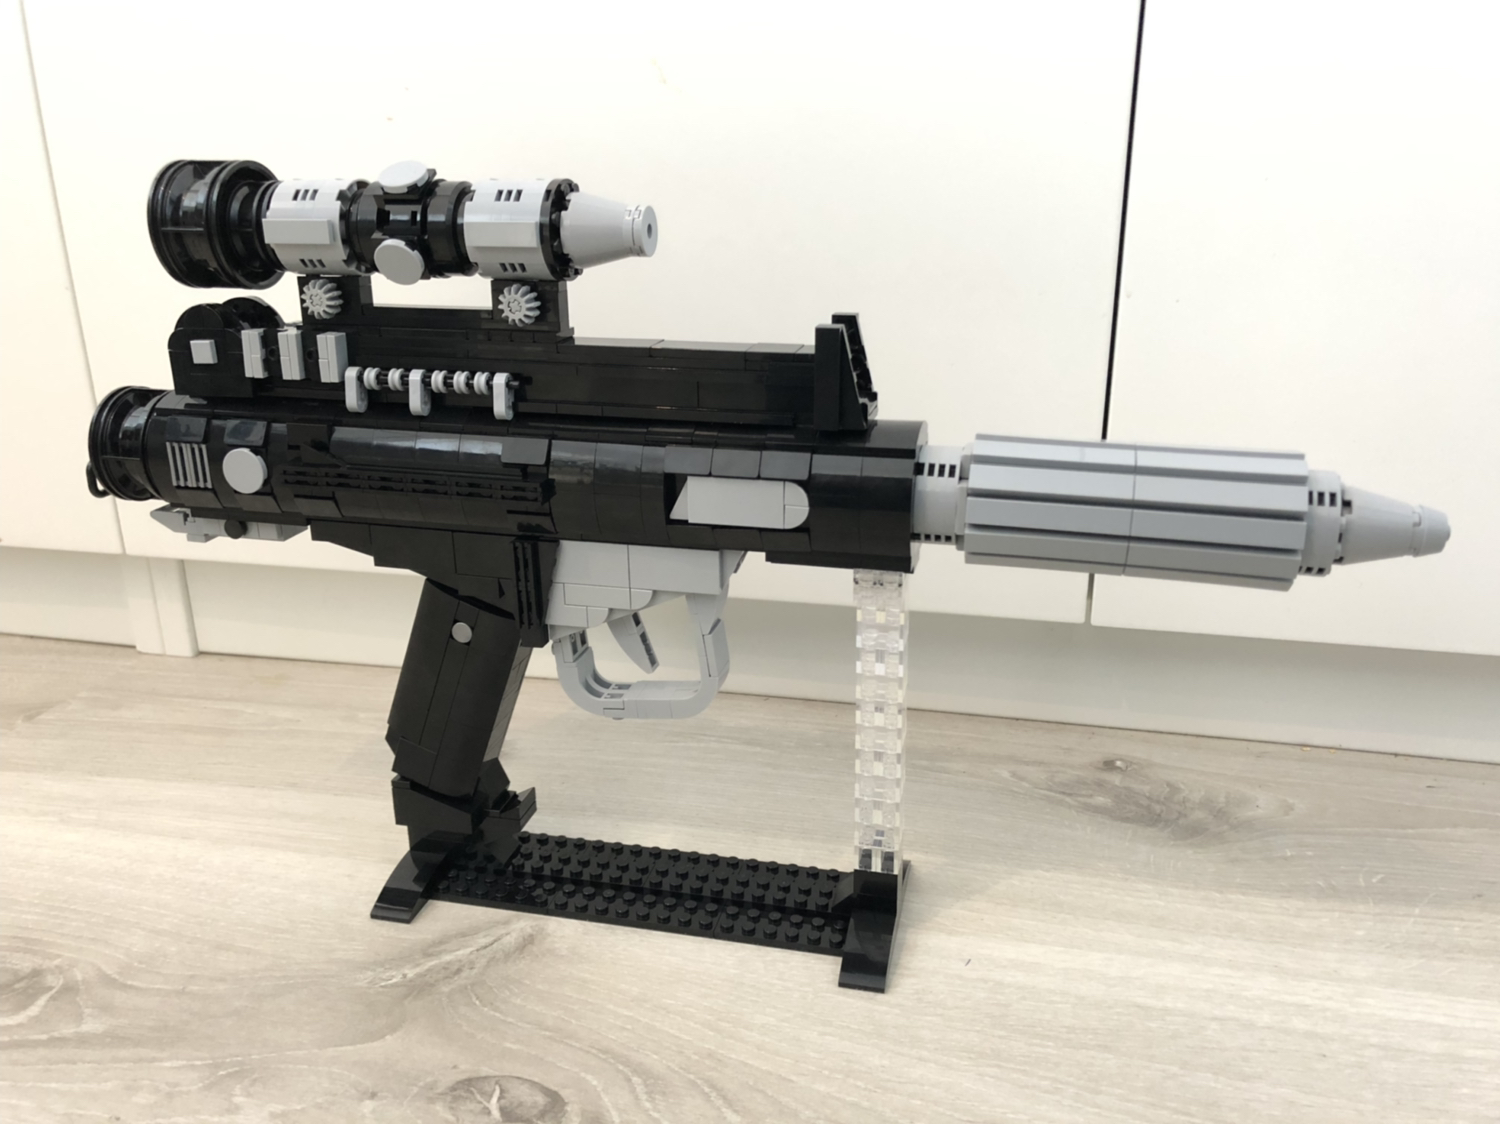 Made a DH-17 out of Lego